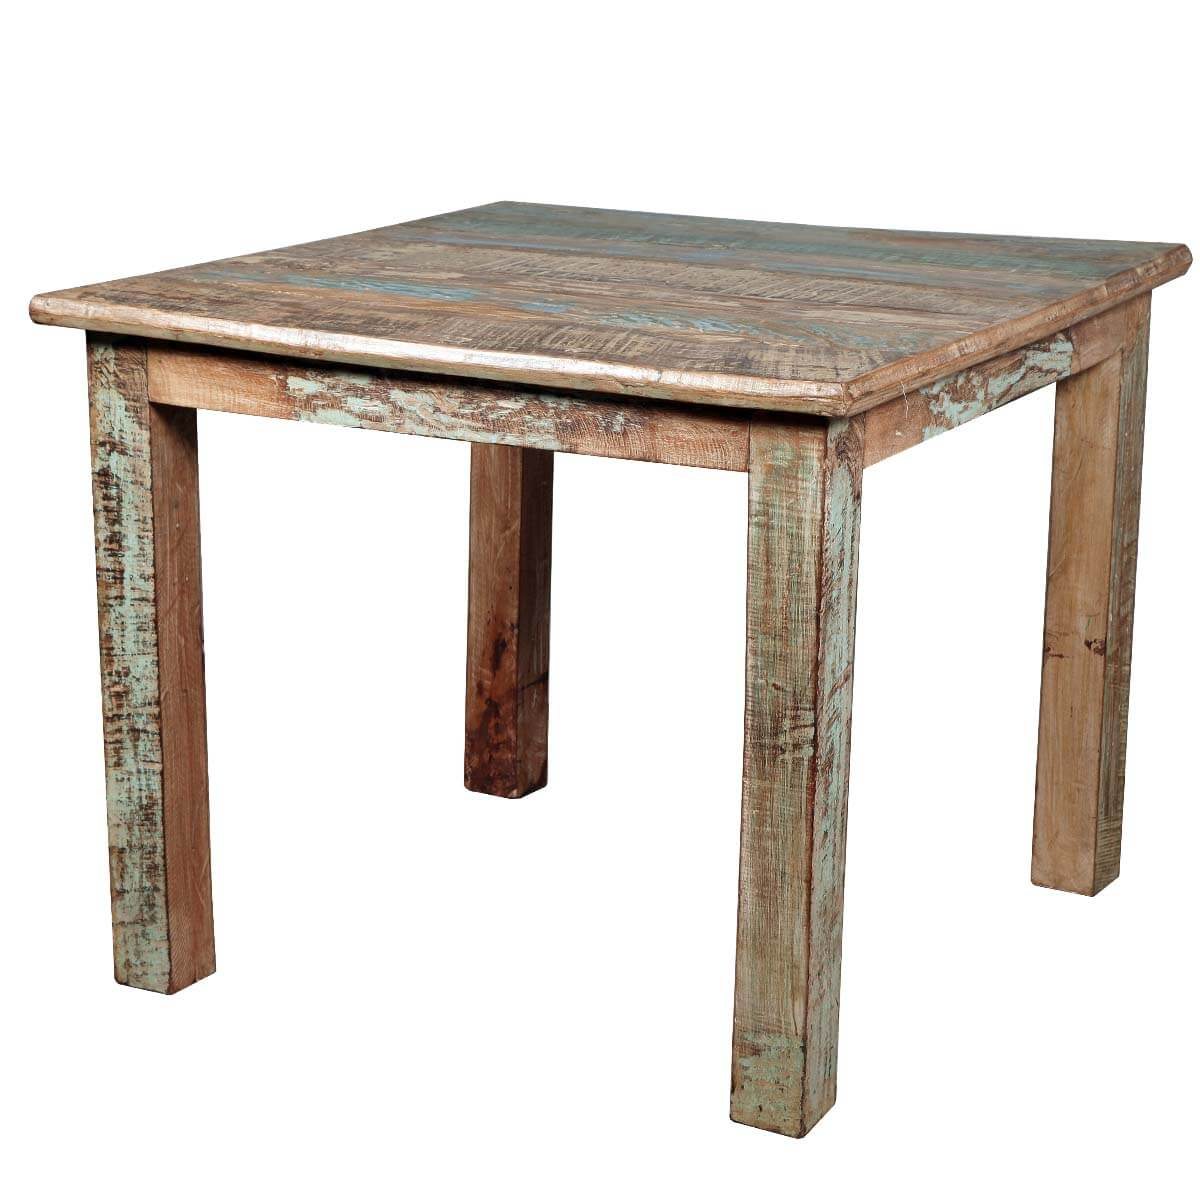 Rustic reclaimed wood distressed small kitchen dining table for Kitchen tables for small kitchens